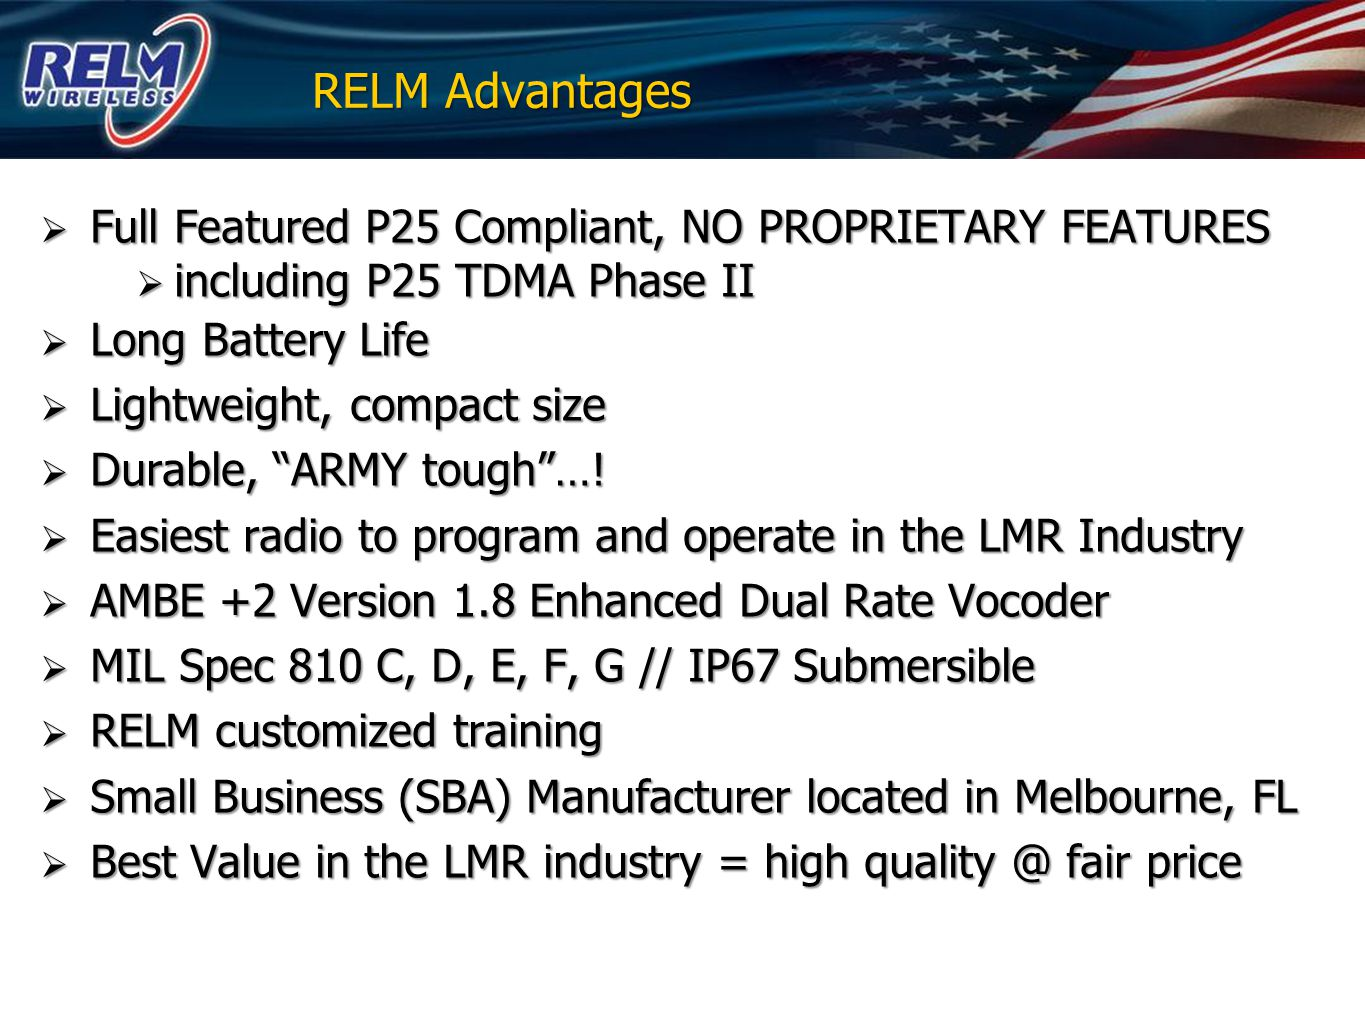 RELM Advantages Full Featured P25 Compliant, NO PROPRIETARY FEATURES